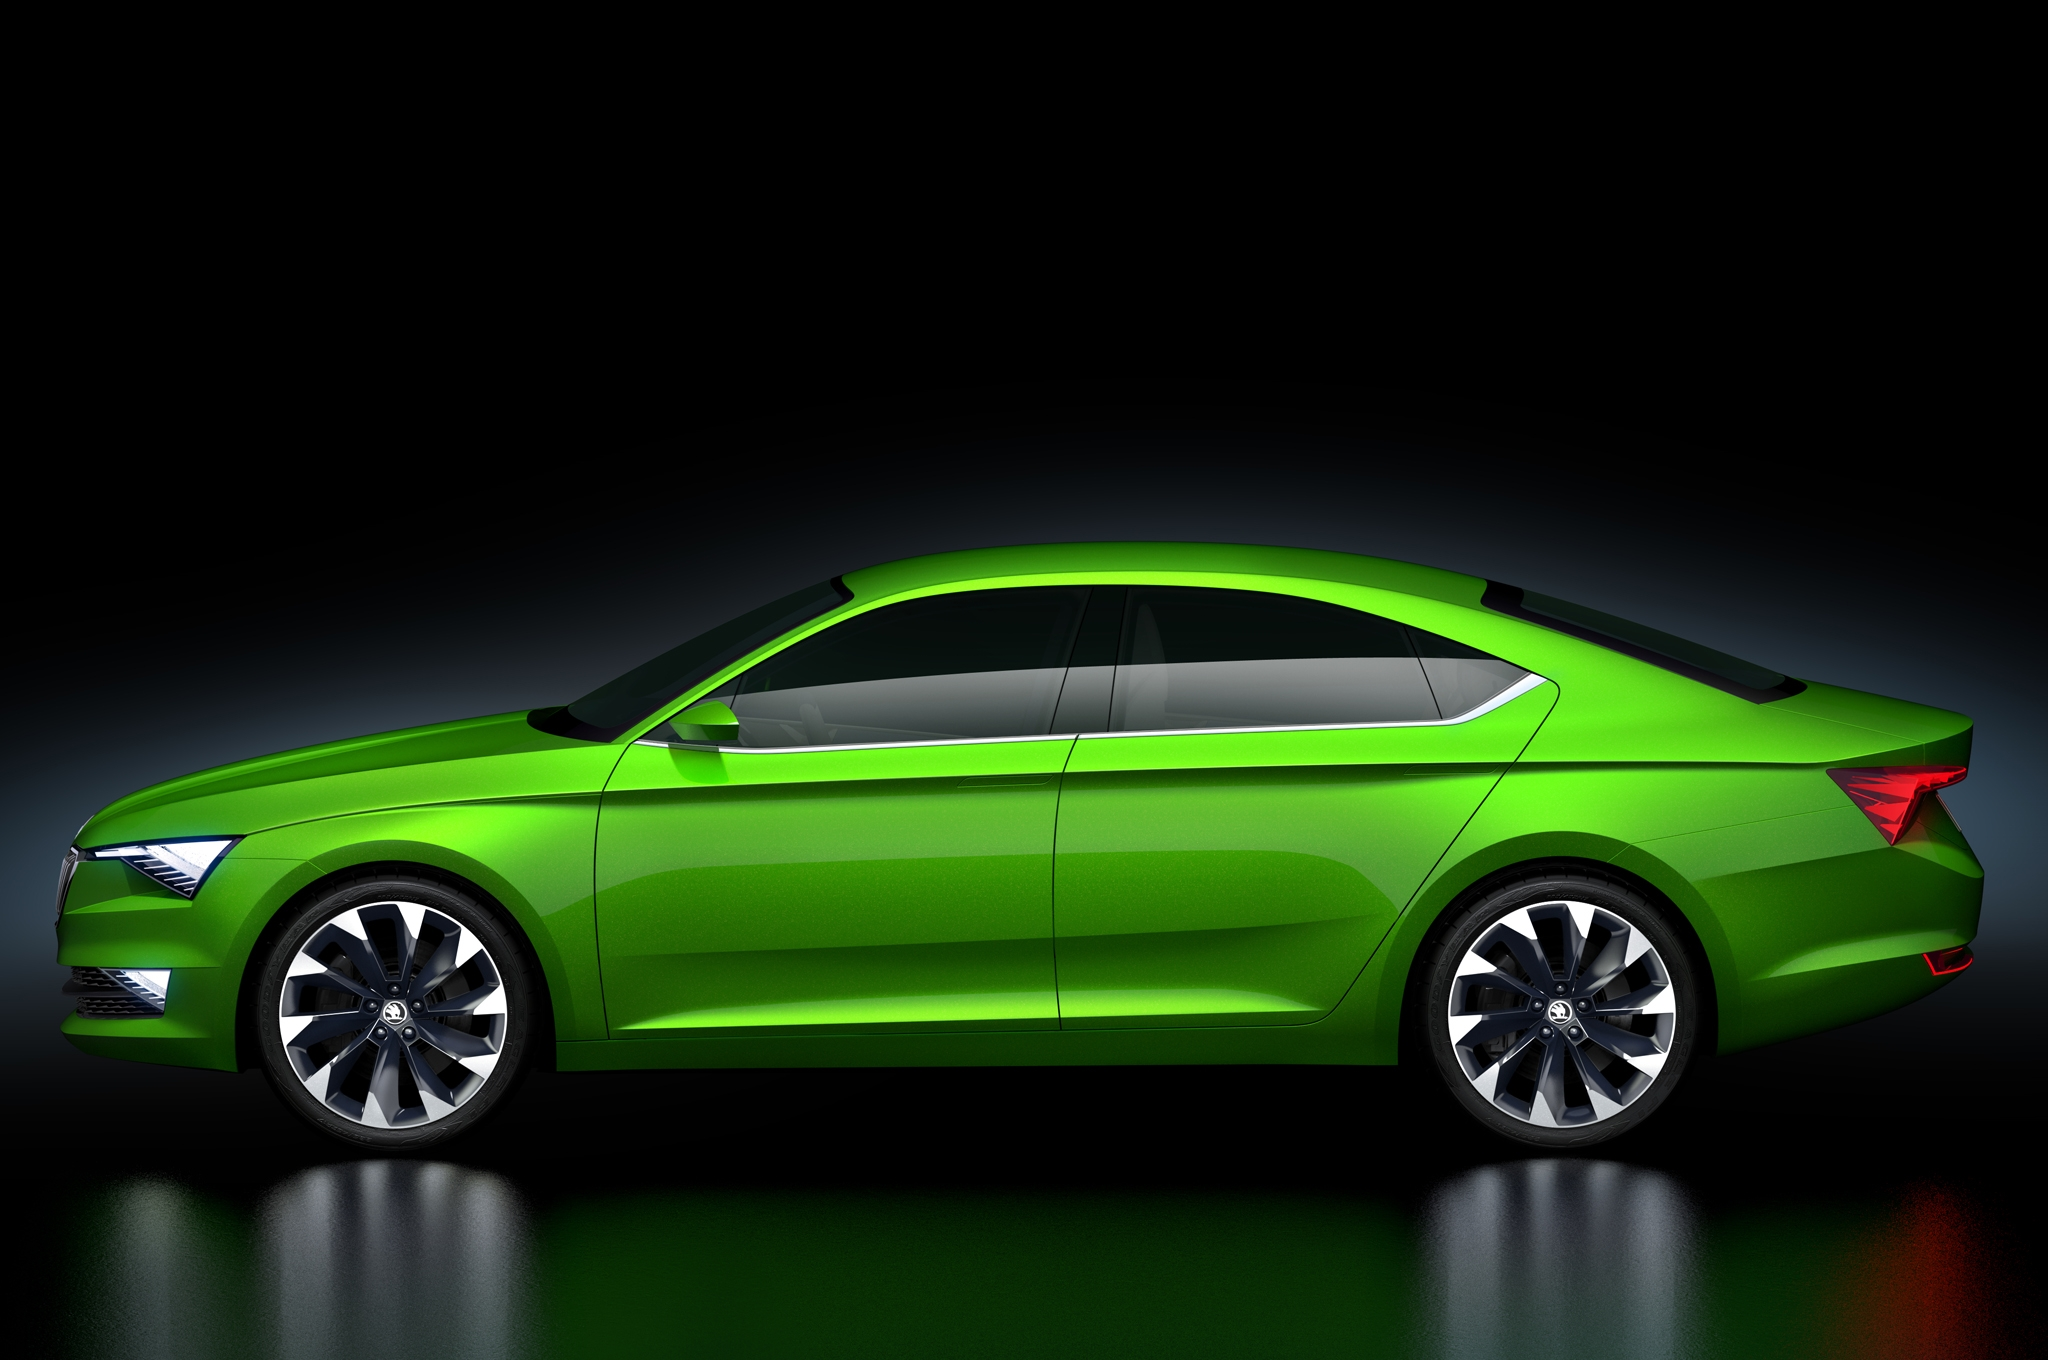 Sketch Skoda Superb 2016 2048x1360 Download Hd Wallpaper Wallpapertip